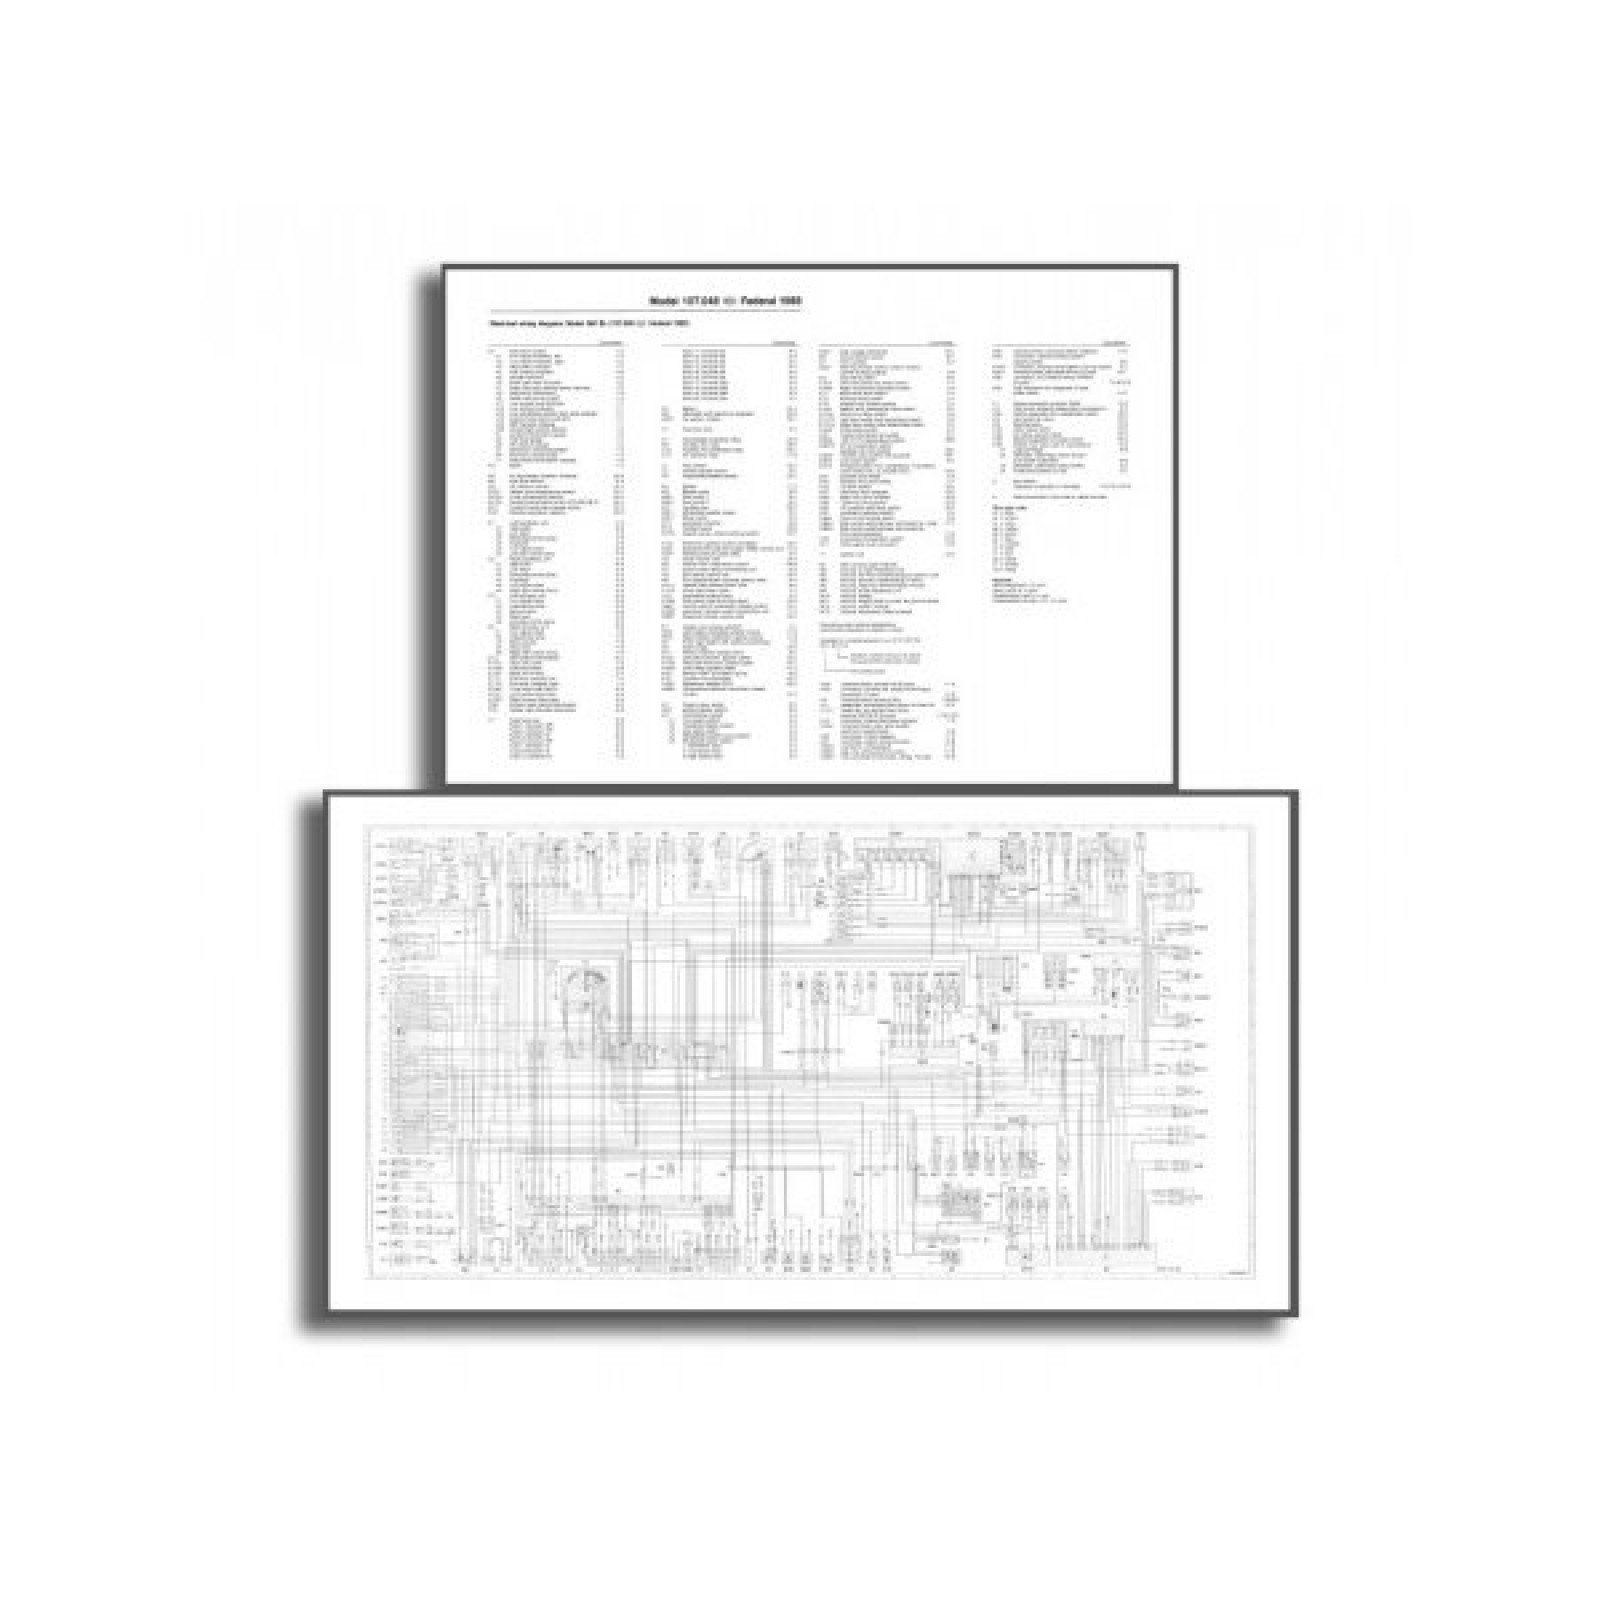 107.1114_1 mercedes benz sl 107 wiring diagram pdf download the sl shop 2015 Mercedes 500SL at webbmarketing.co